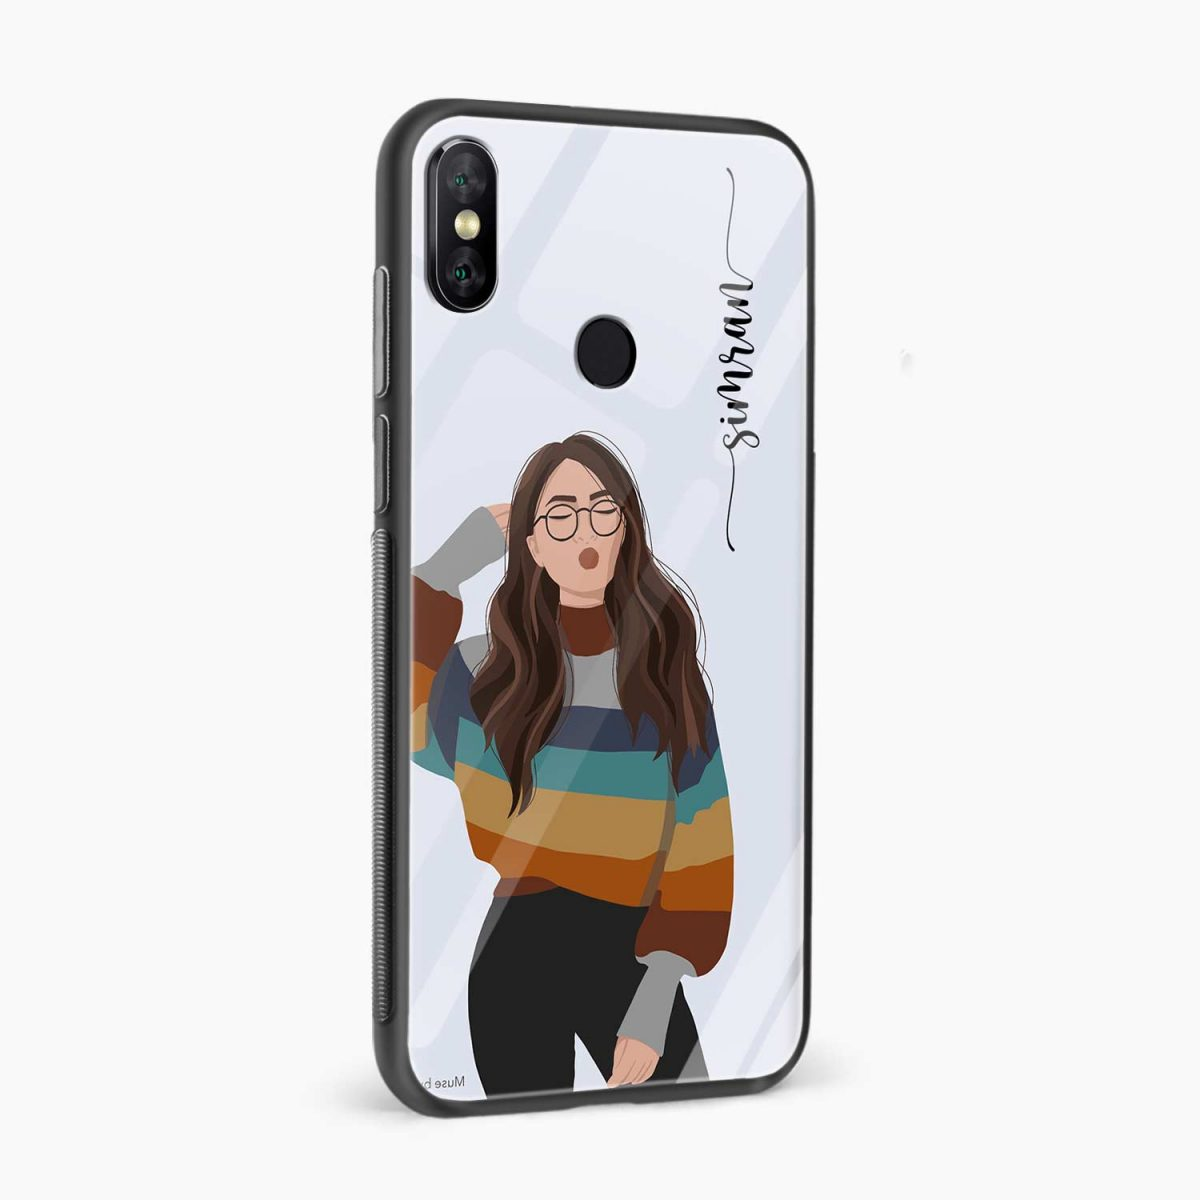 its me redmi note 5 pro back cover side view